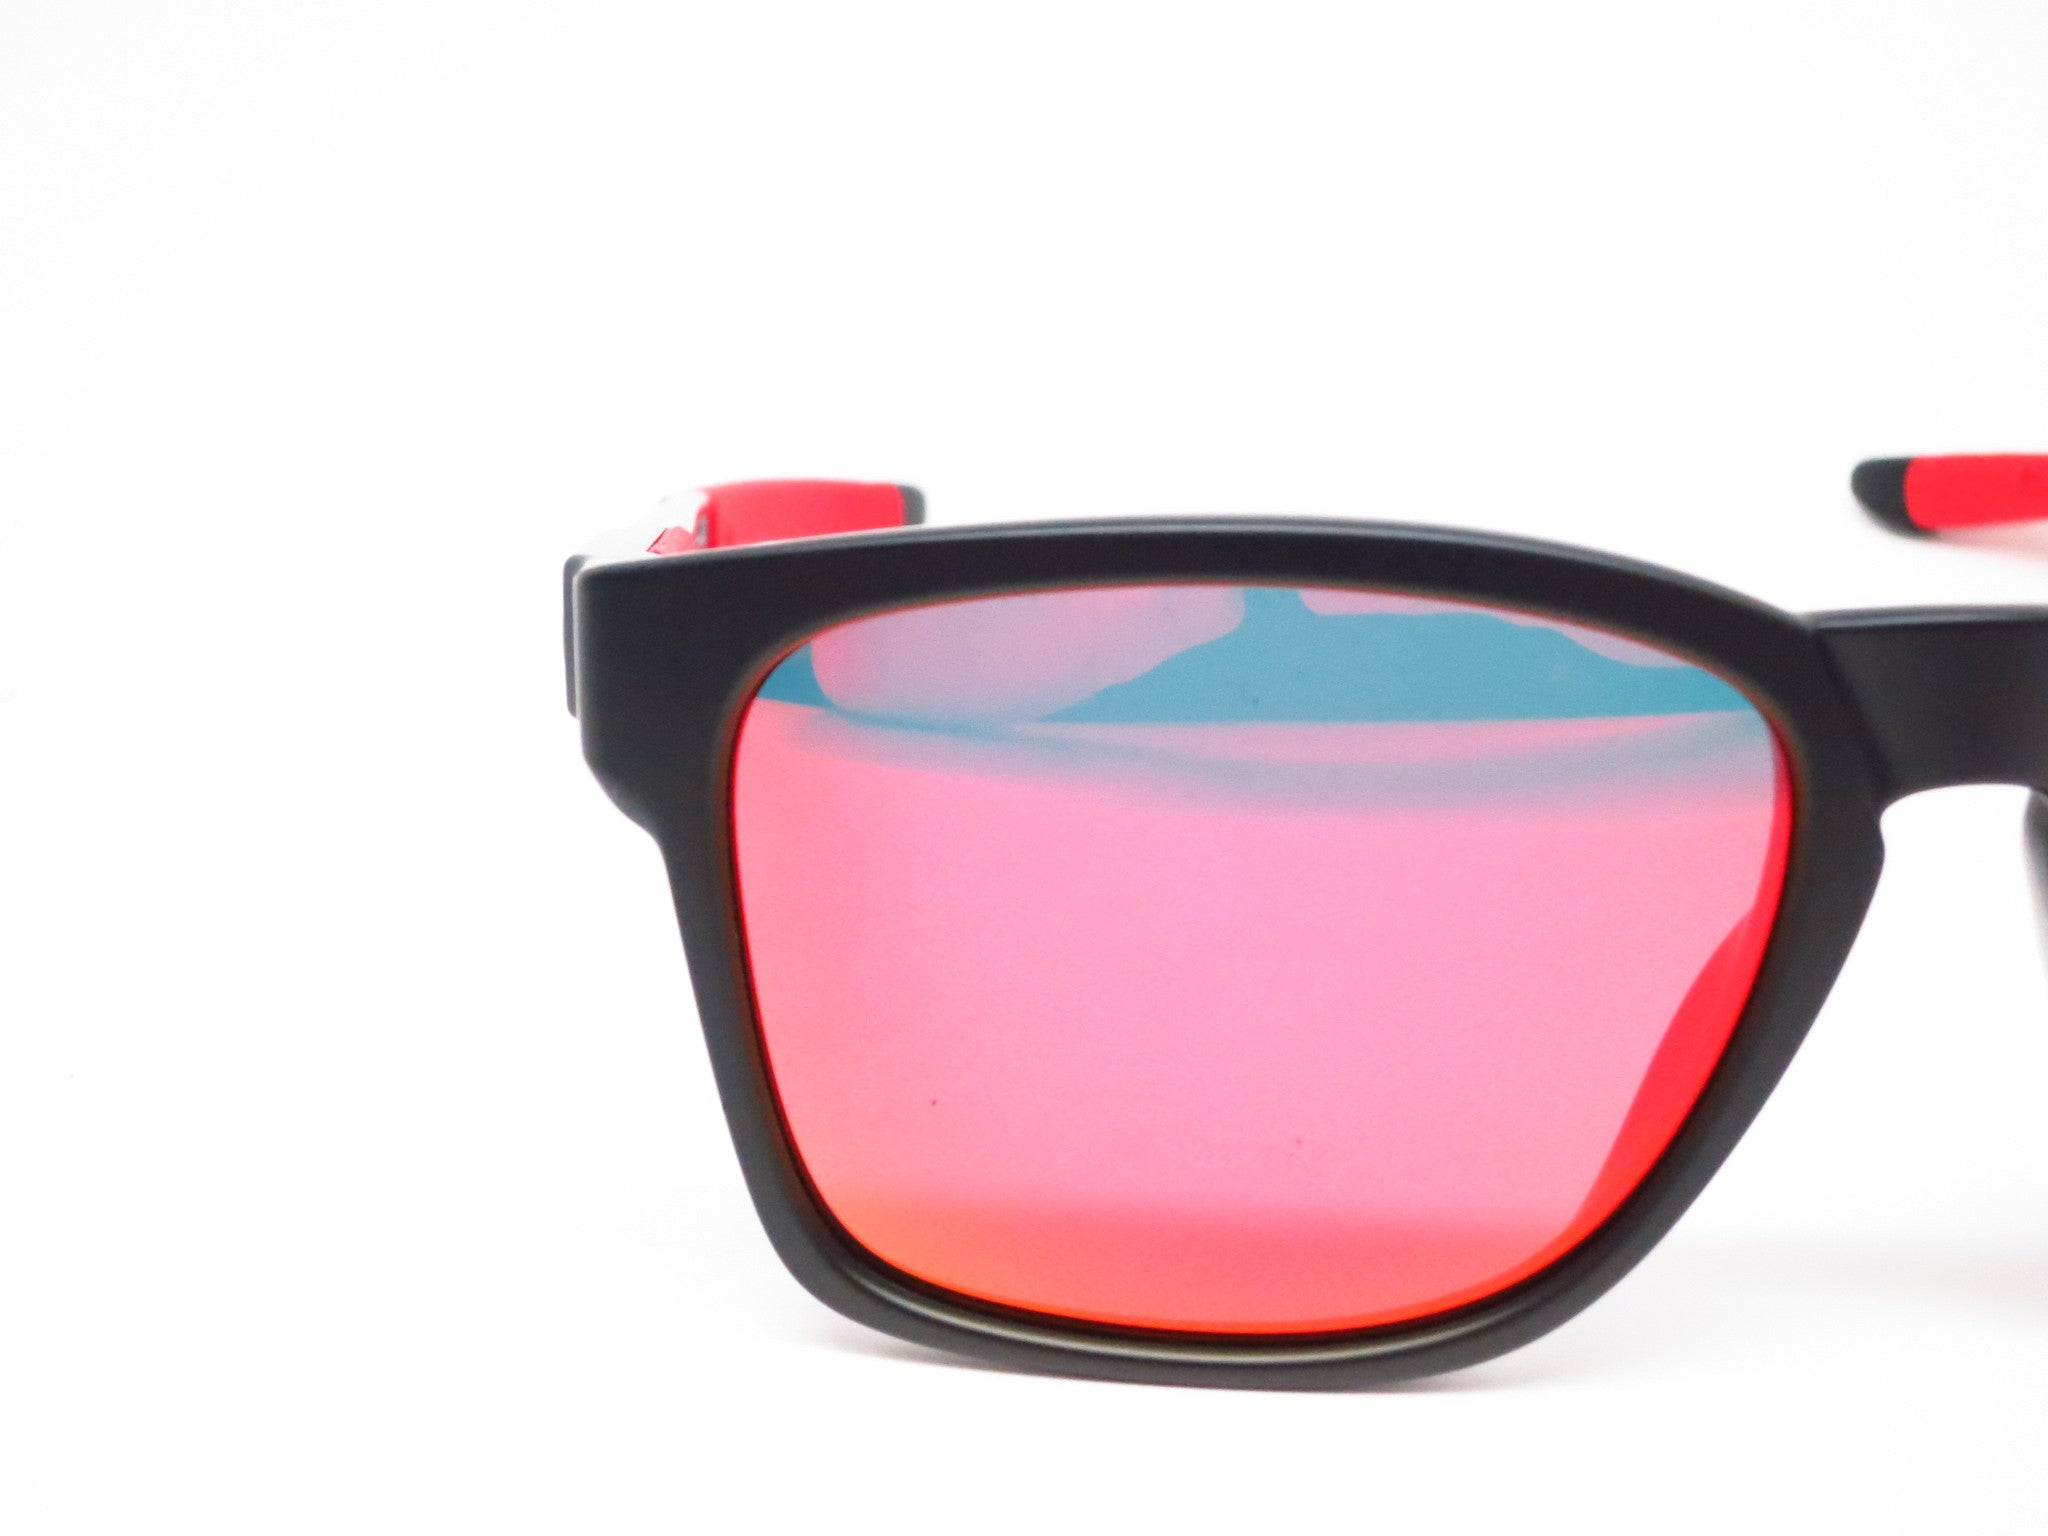 How To Clean My Oakley Sunglasses